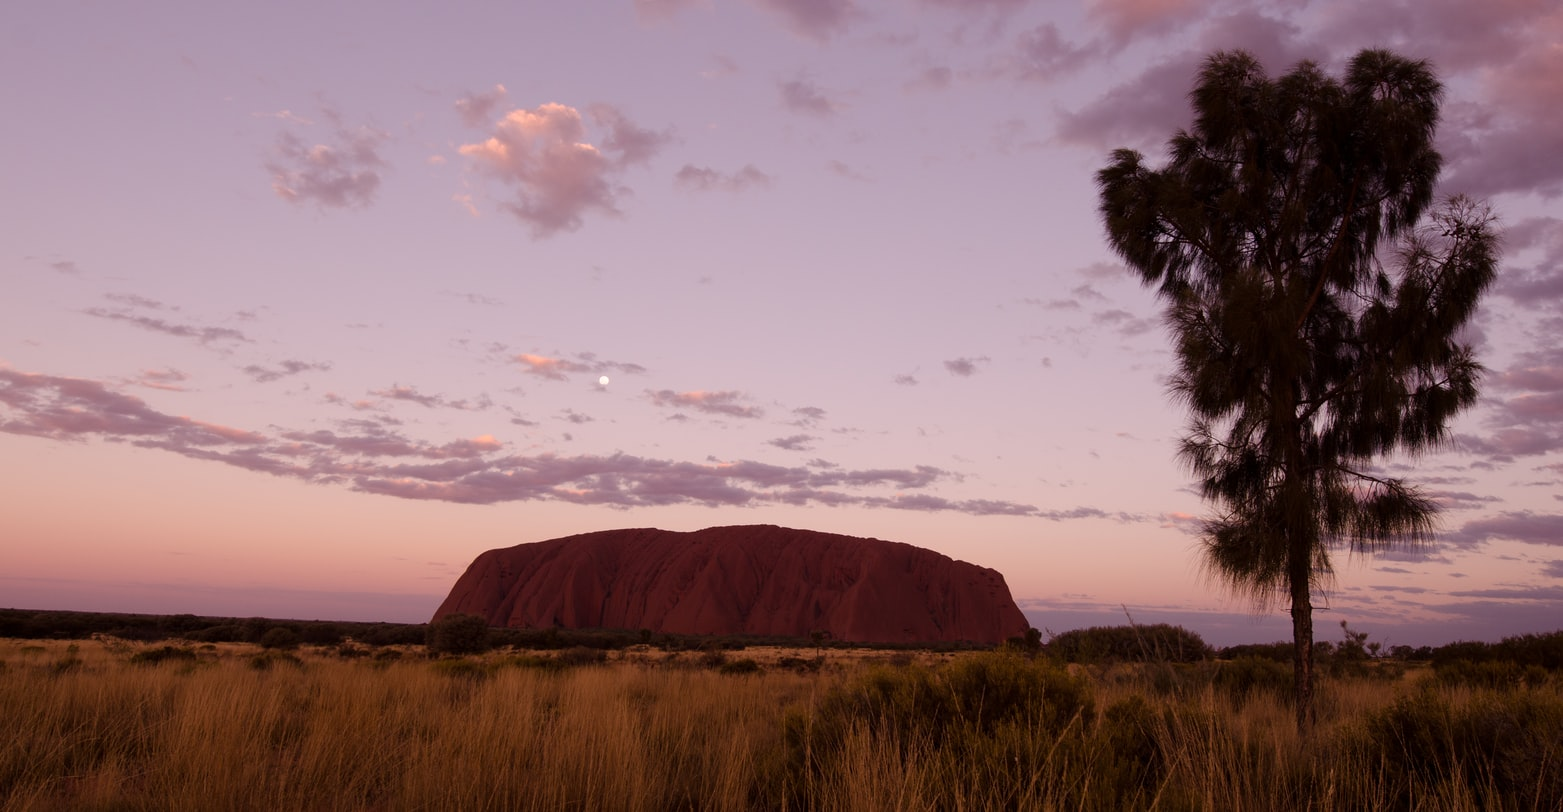 uluru is not the biggest rock in the world with grass and tree in the foreground photo